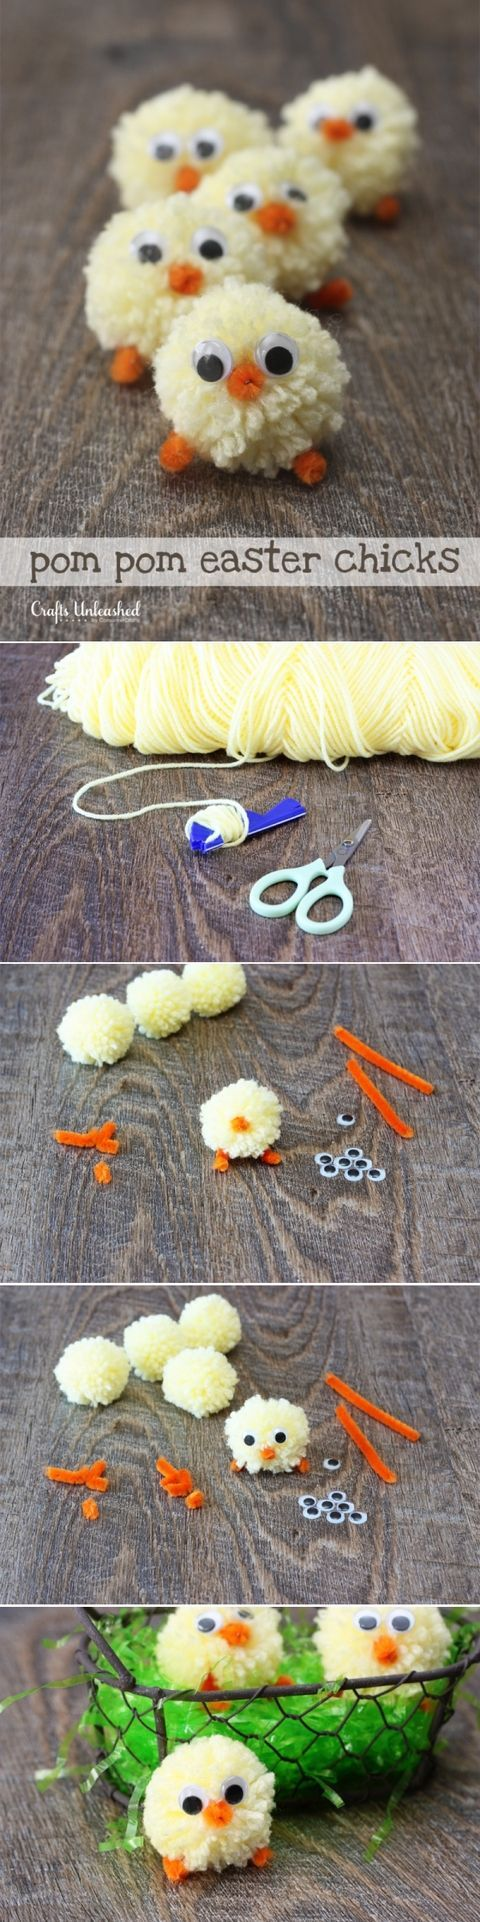 DIY Pom Pom Easter Chicks for more findings pls visit www.pinterest.com/escherpescarves/